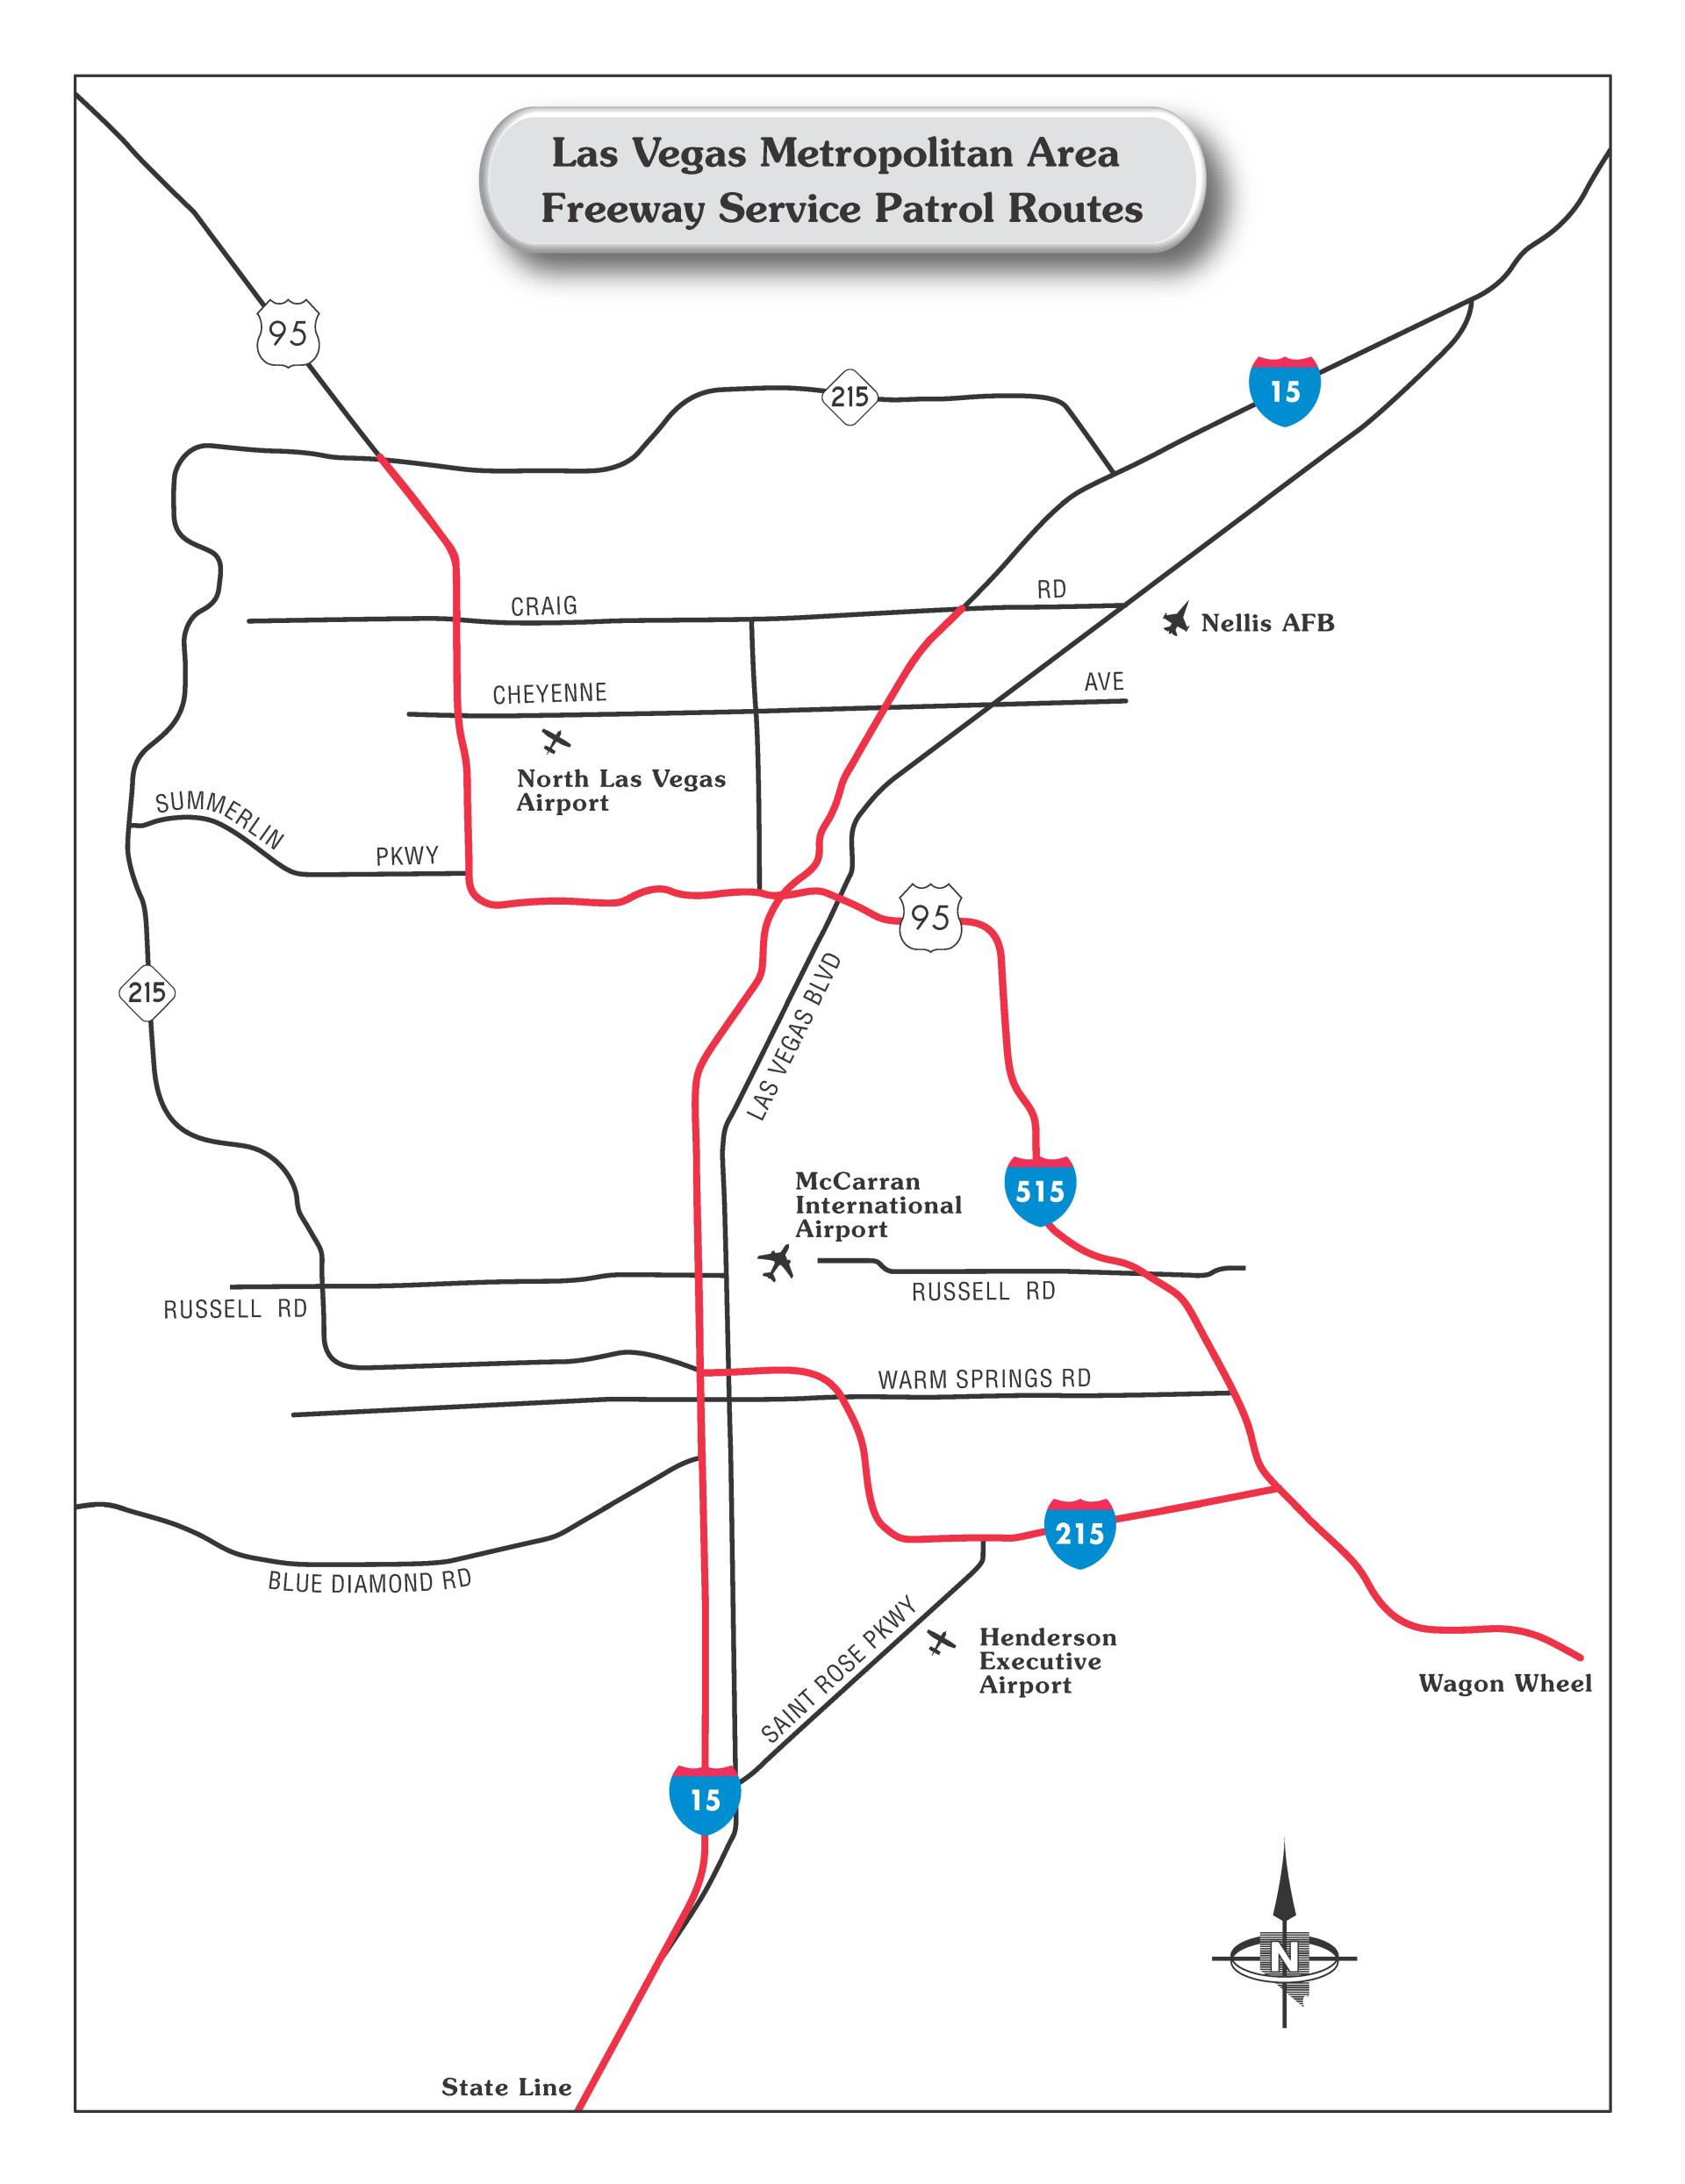 A map of the Freeway Service Patrol route in Las Vegas